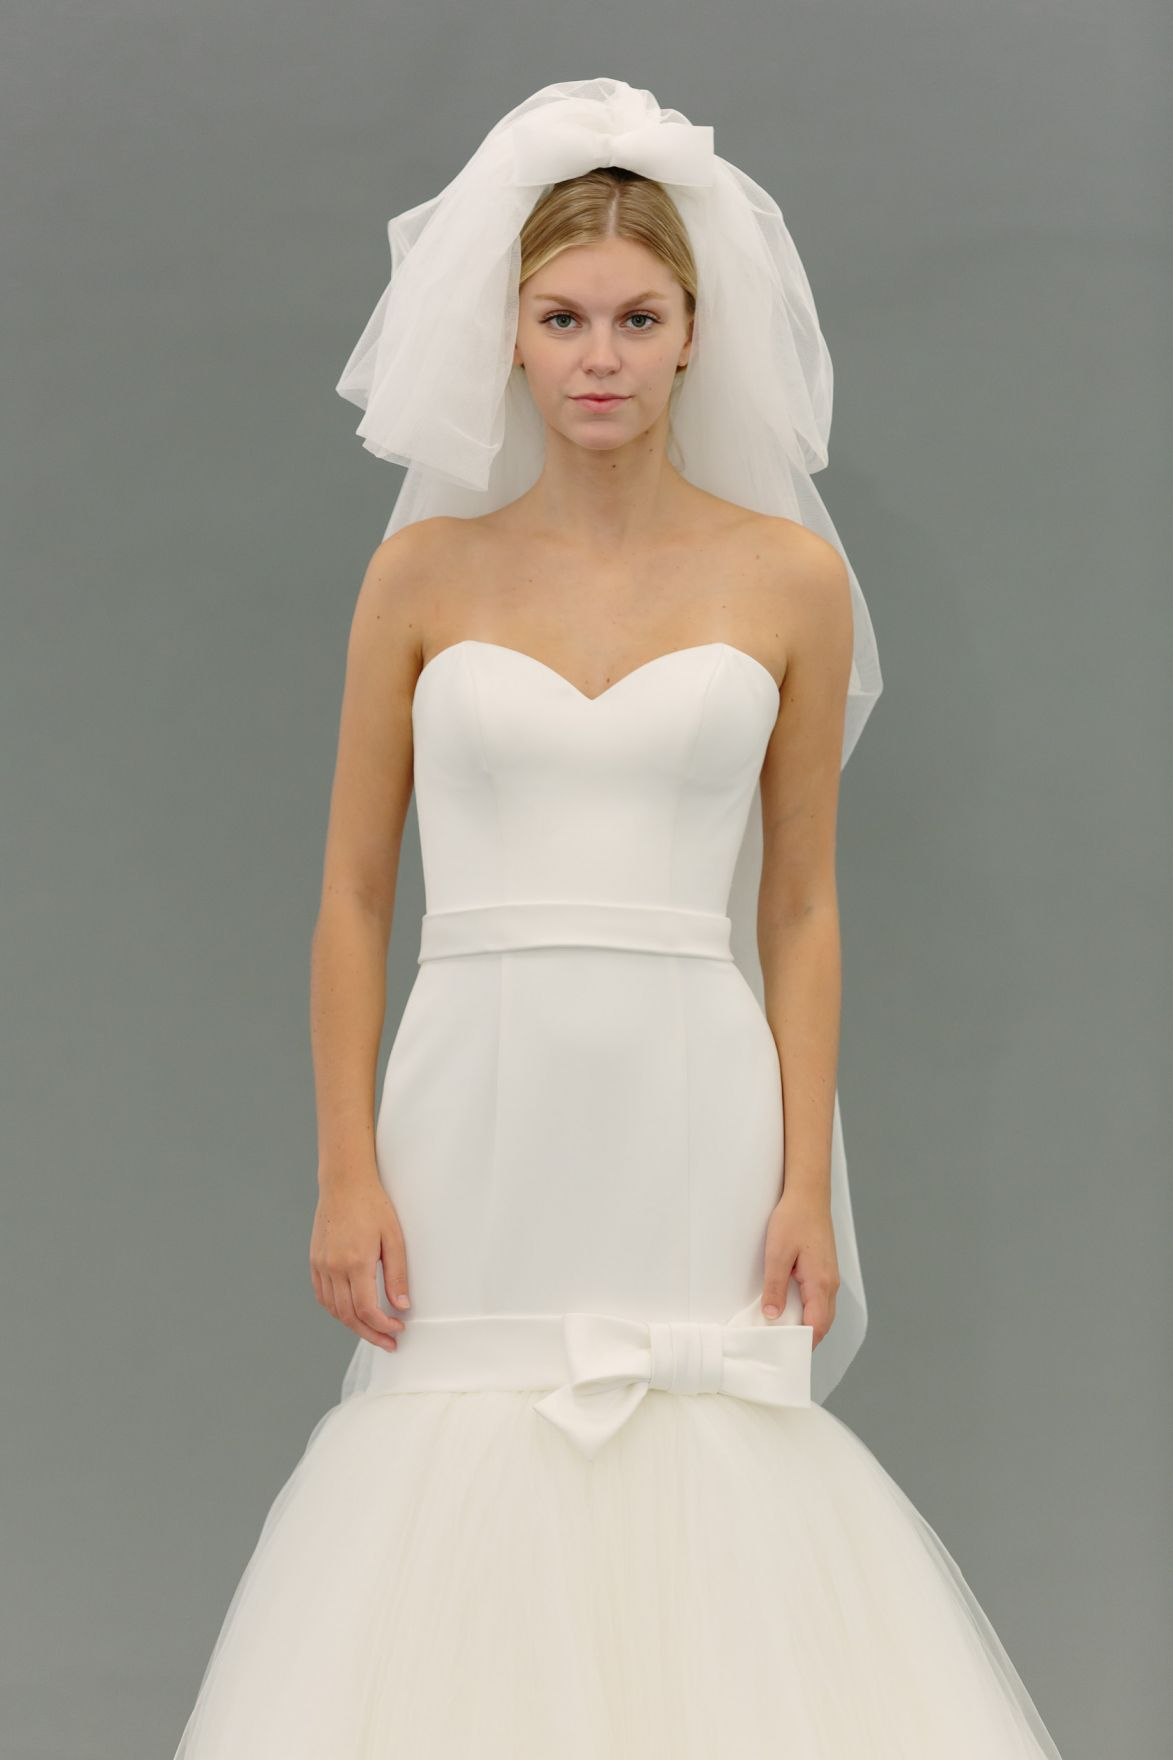 100 Wedding Dress Modeling Jobs How To For A Check More At